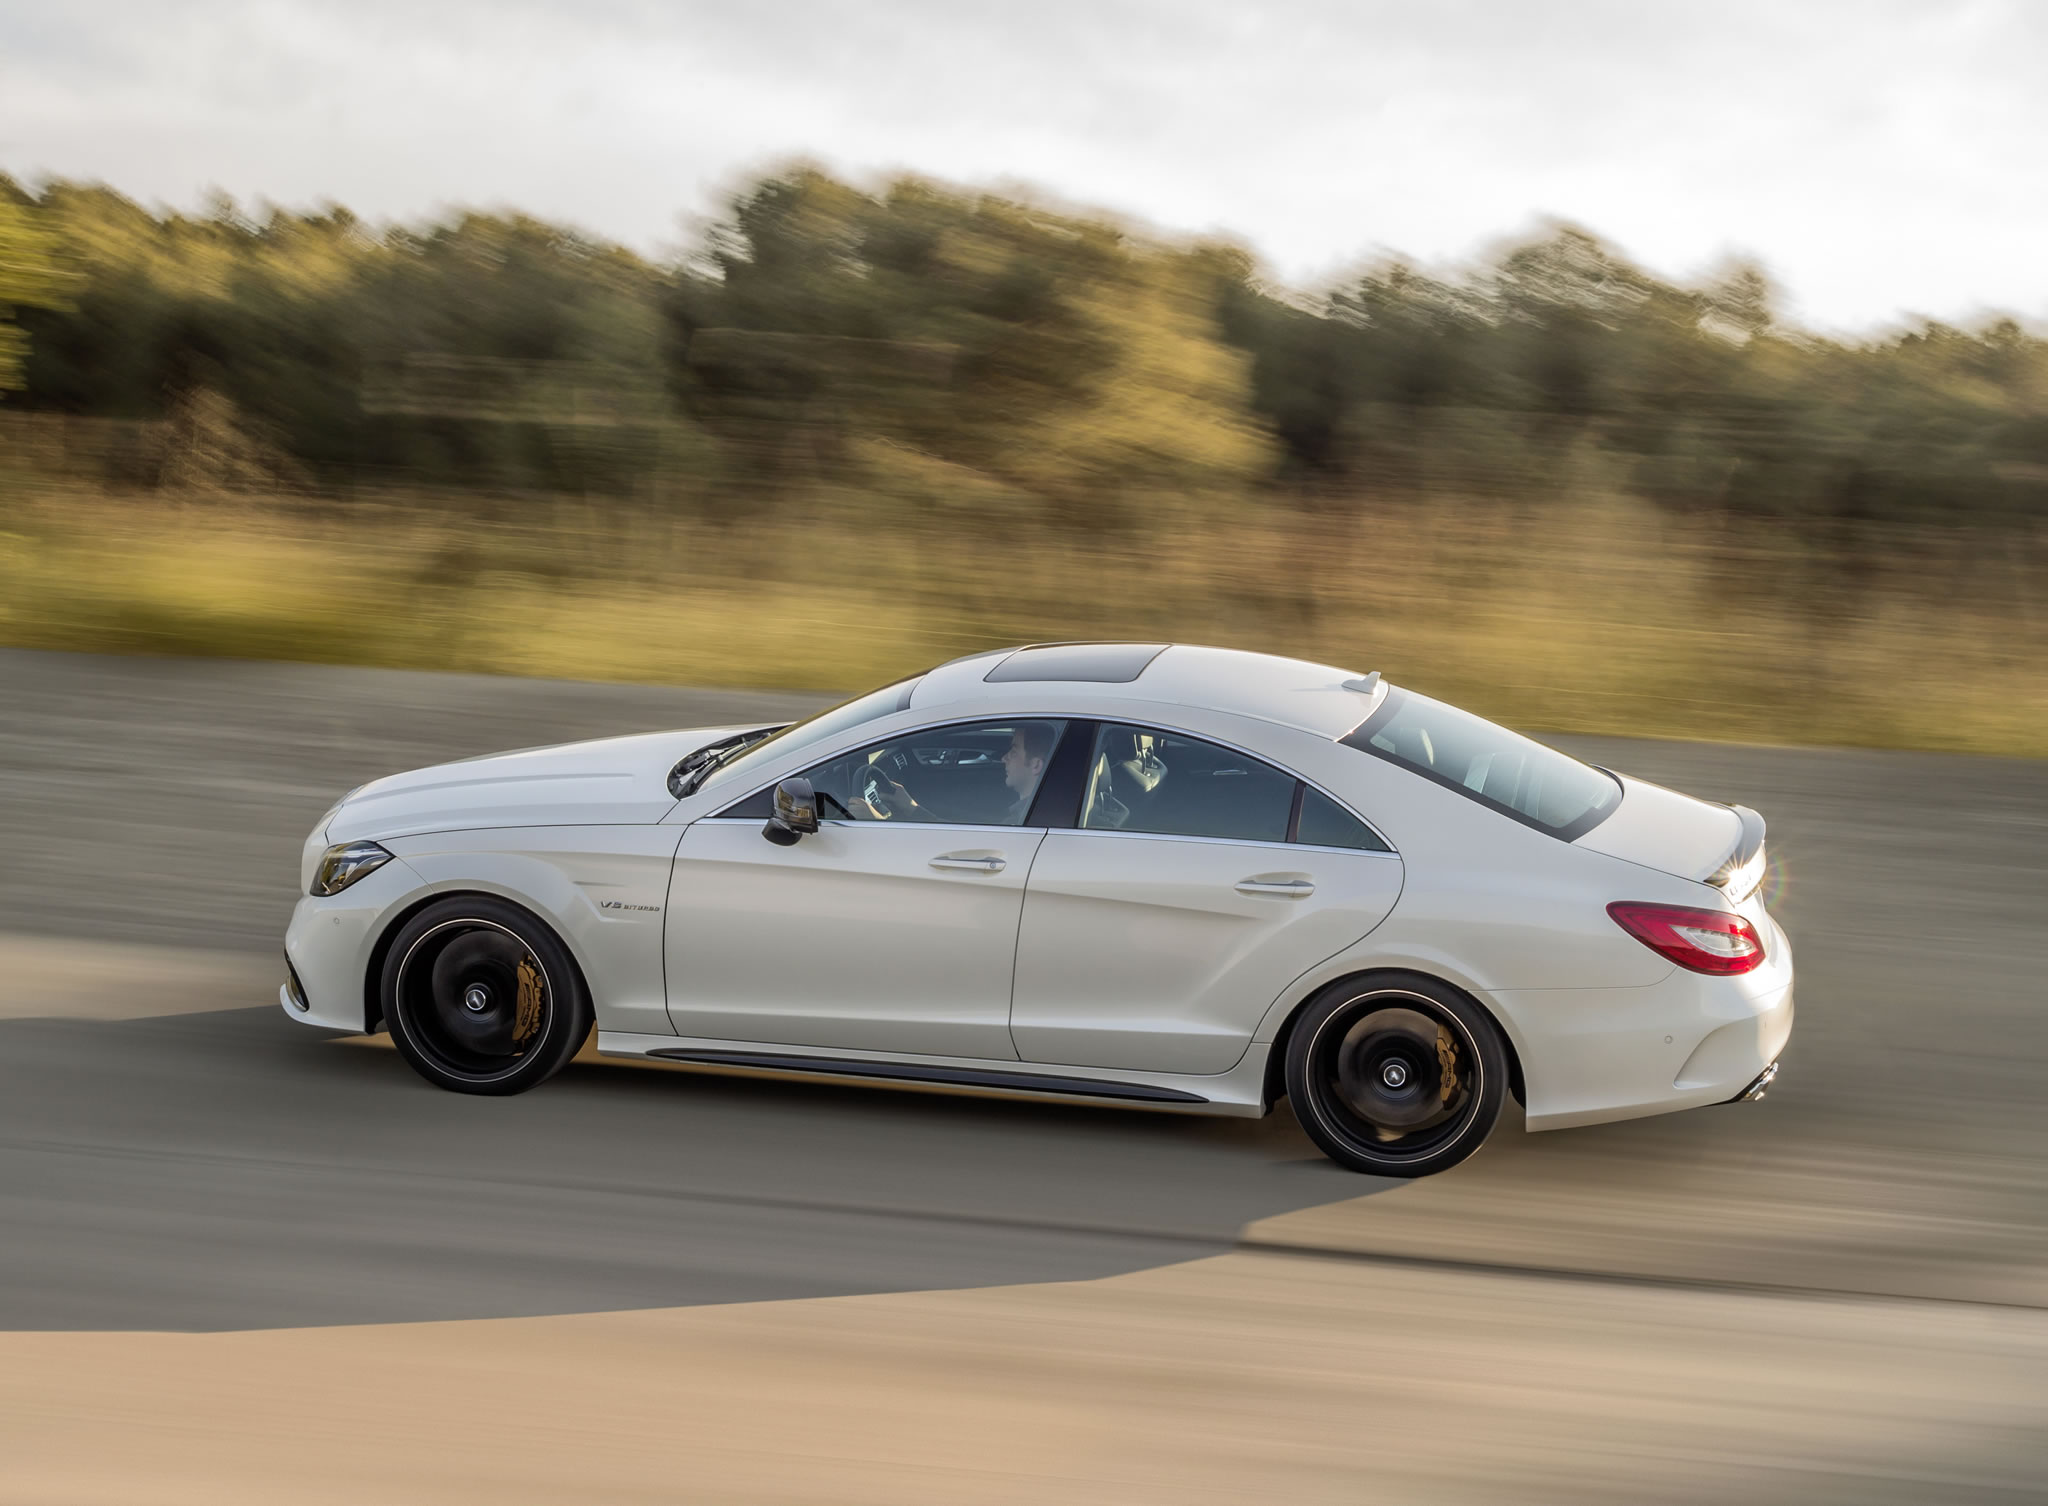 2019 Mercedes Benz CLS63 AMG photo - 3